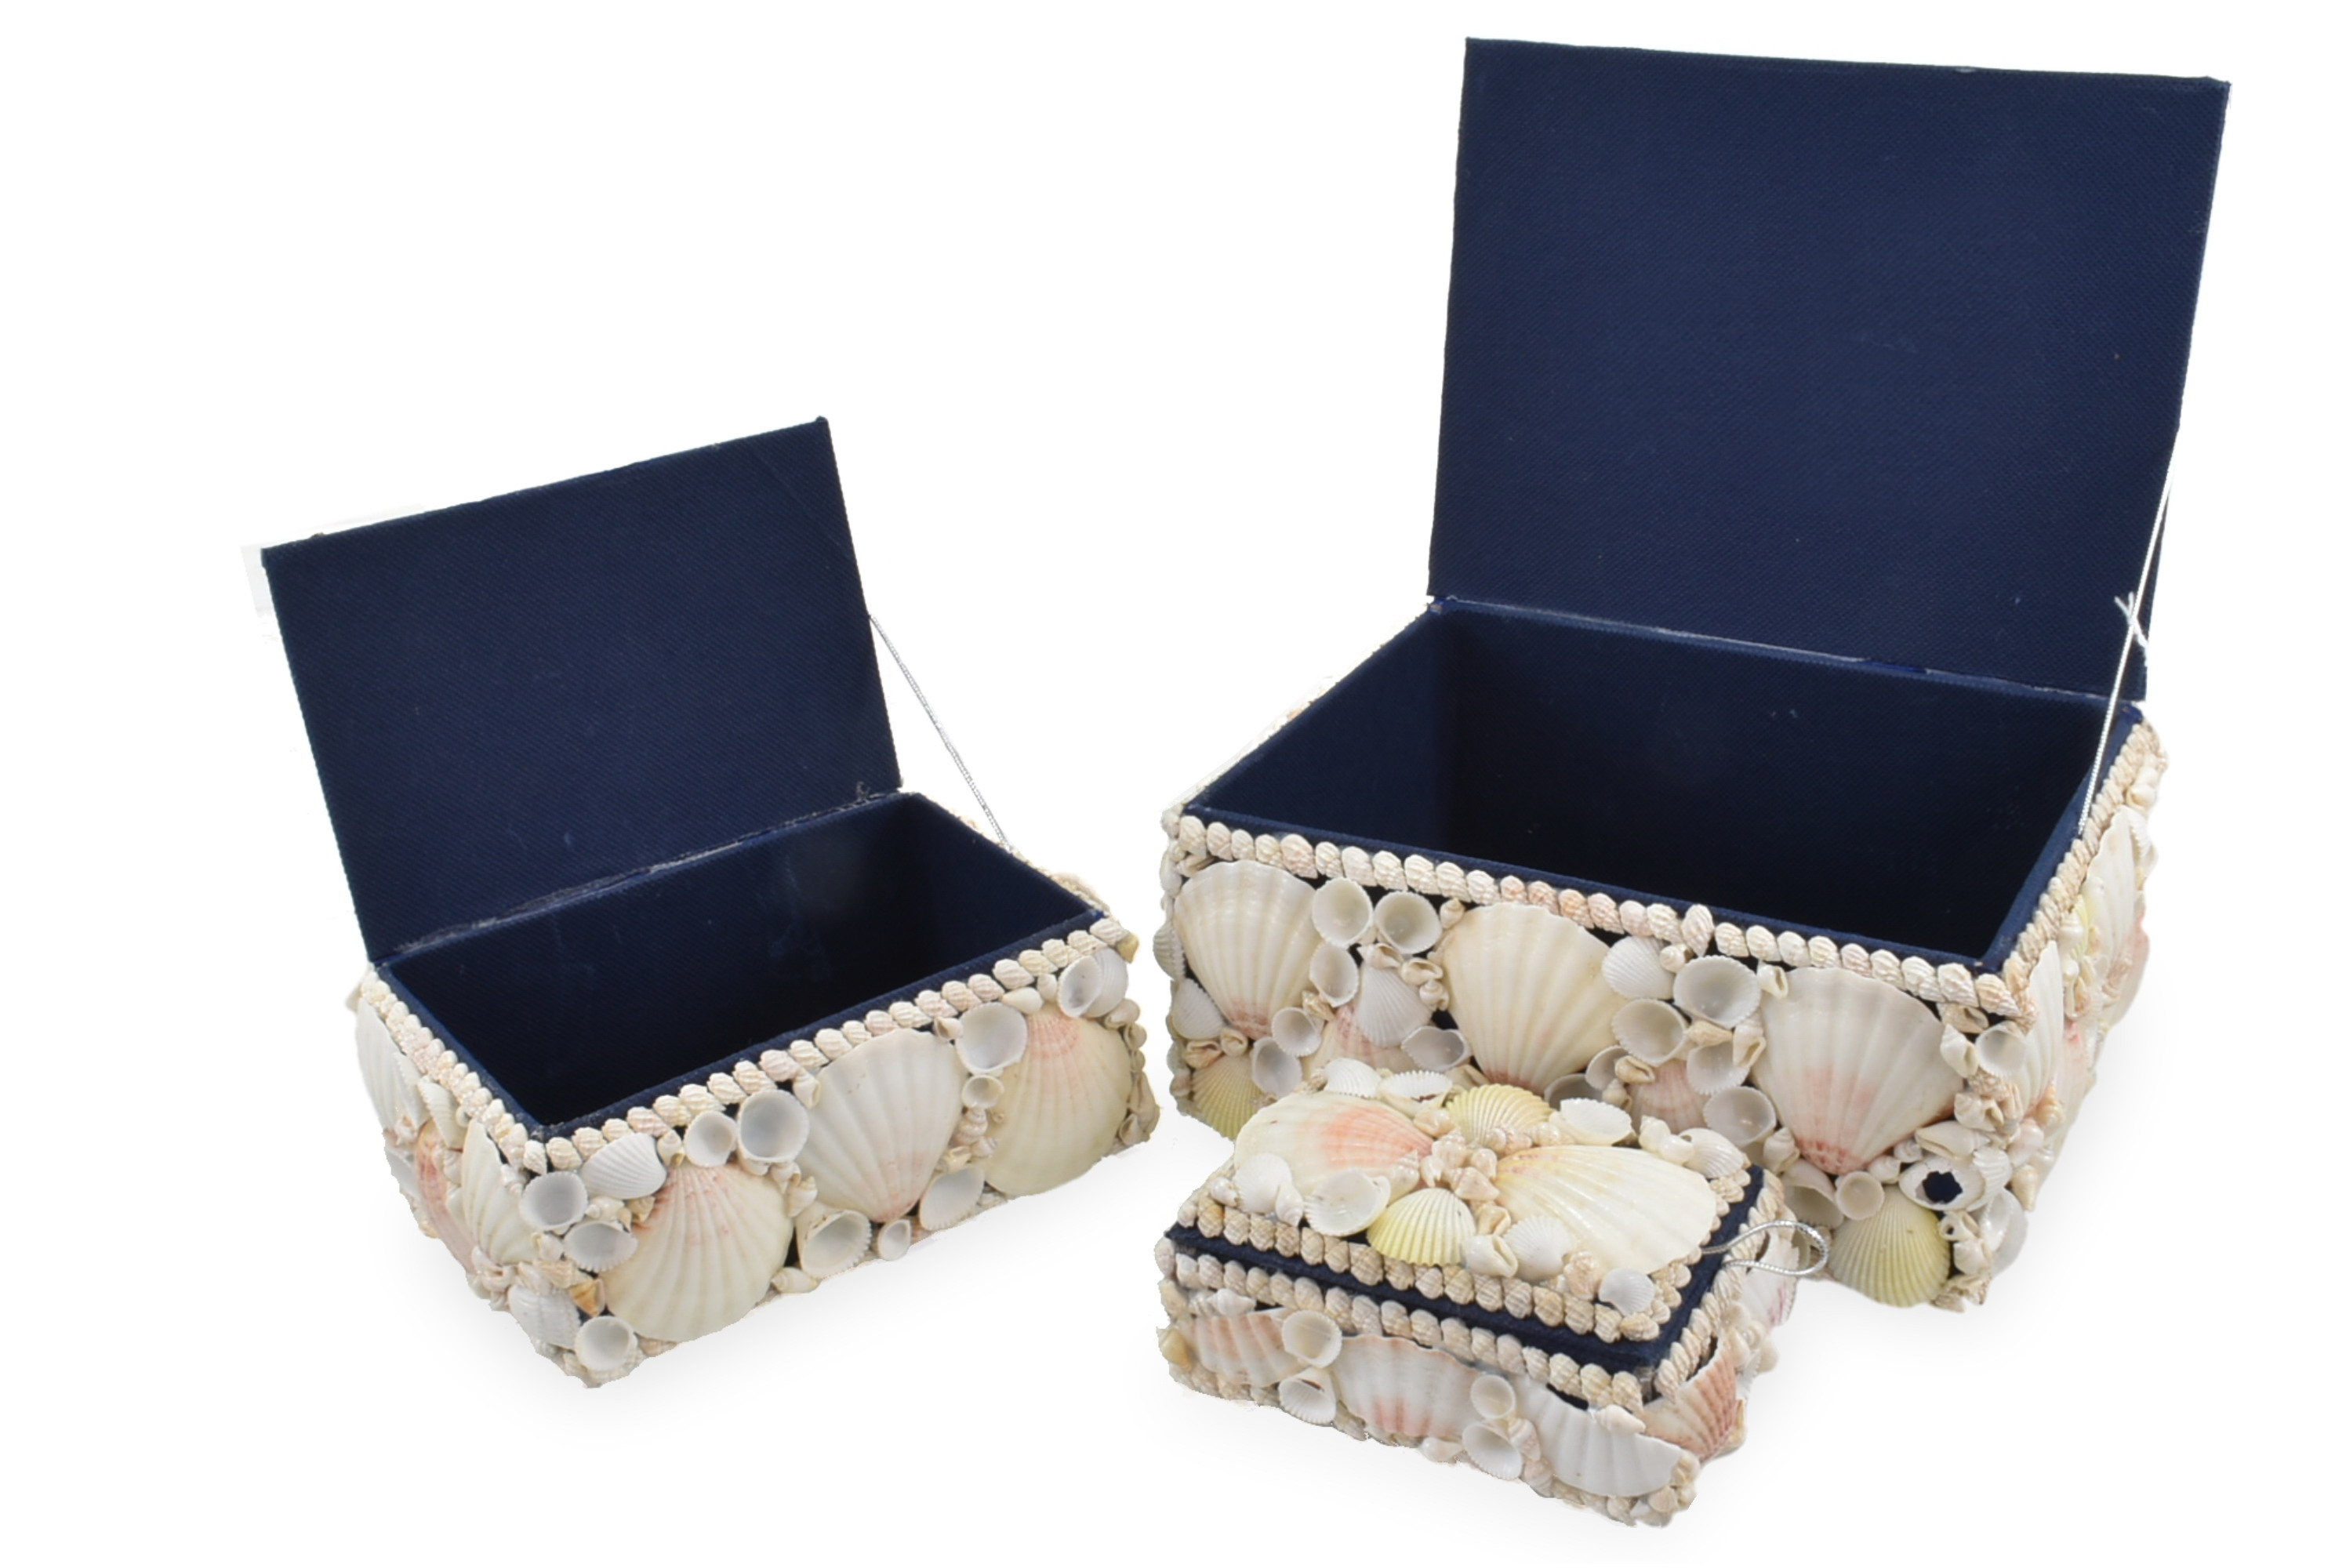 White Shell Boxes Set Of 3 With Blue Lining